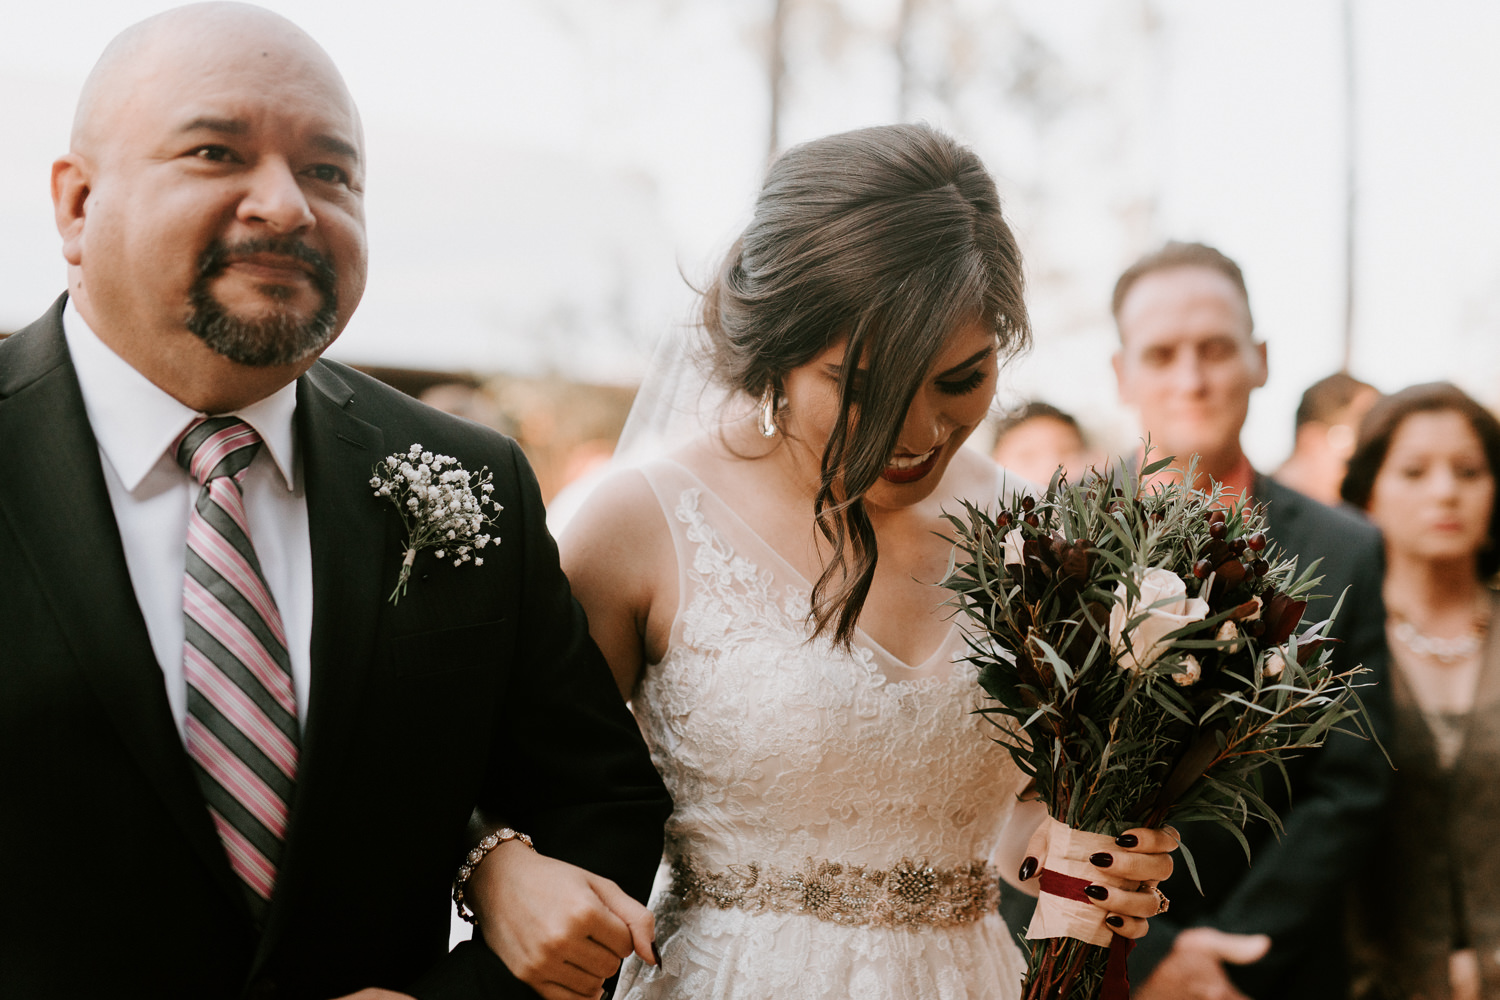 Bride walked down the aisle at The Woodlands wedding